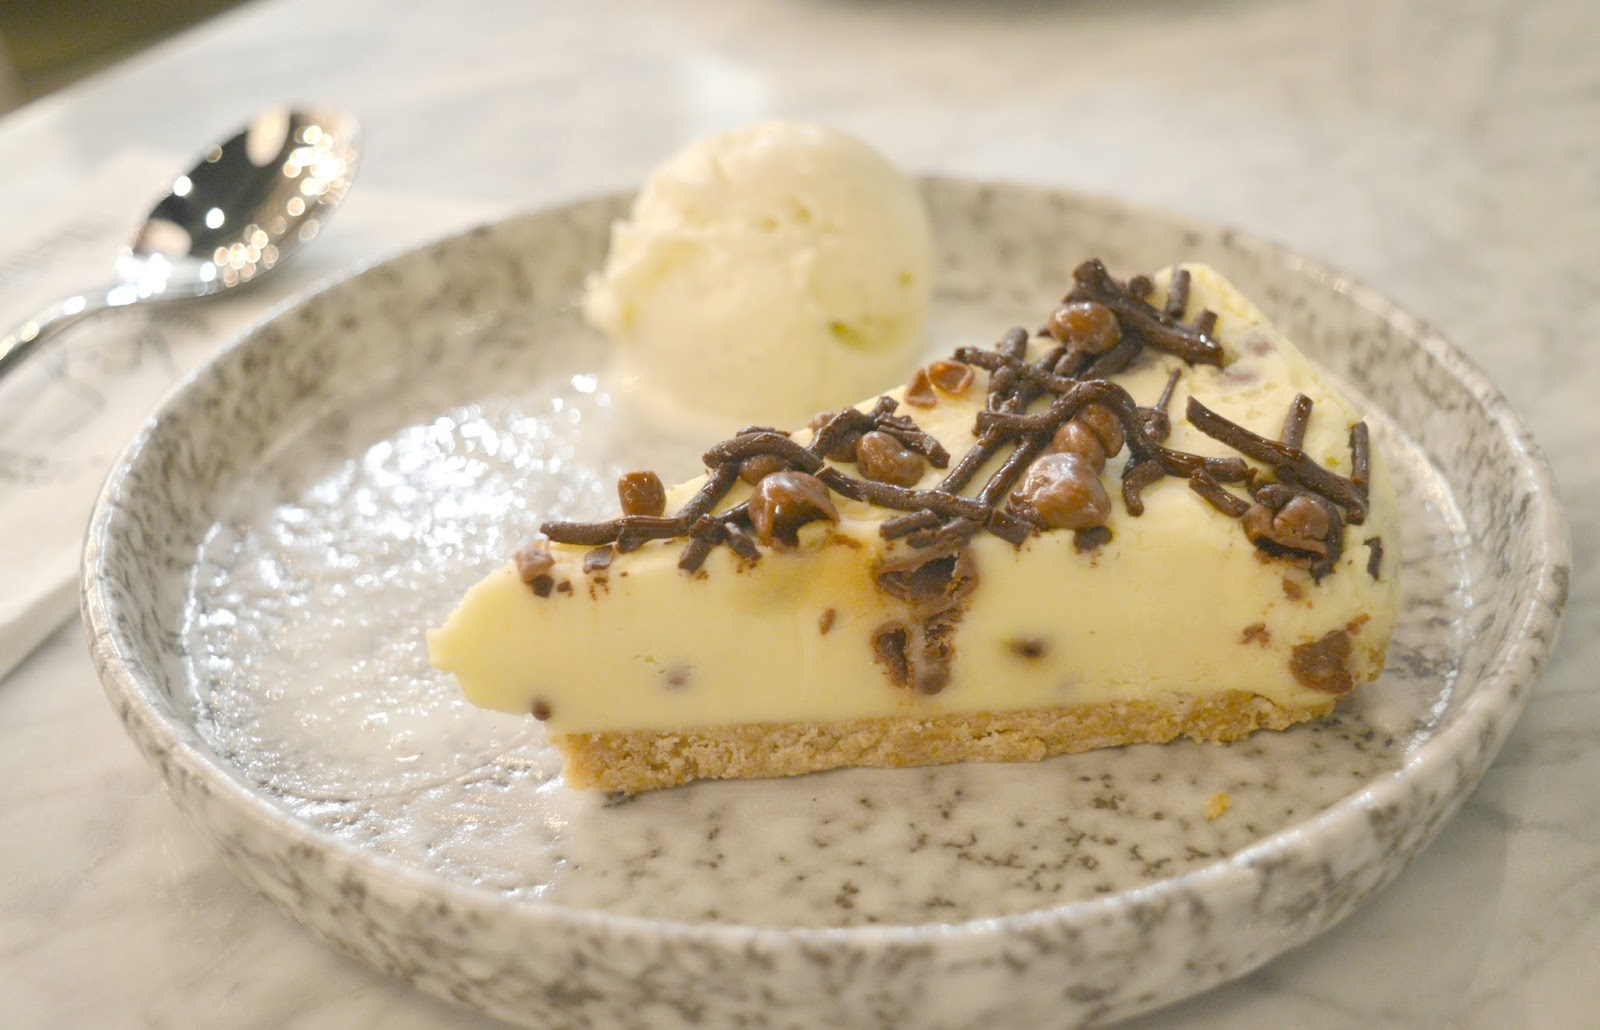 Intu Eldon Square: Grey's Quarter - ASK Italian Honeycomb Cheesecake